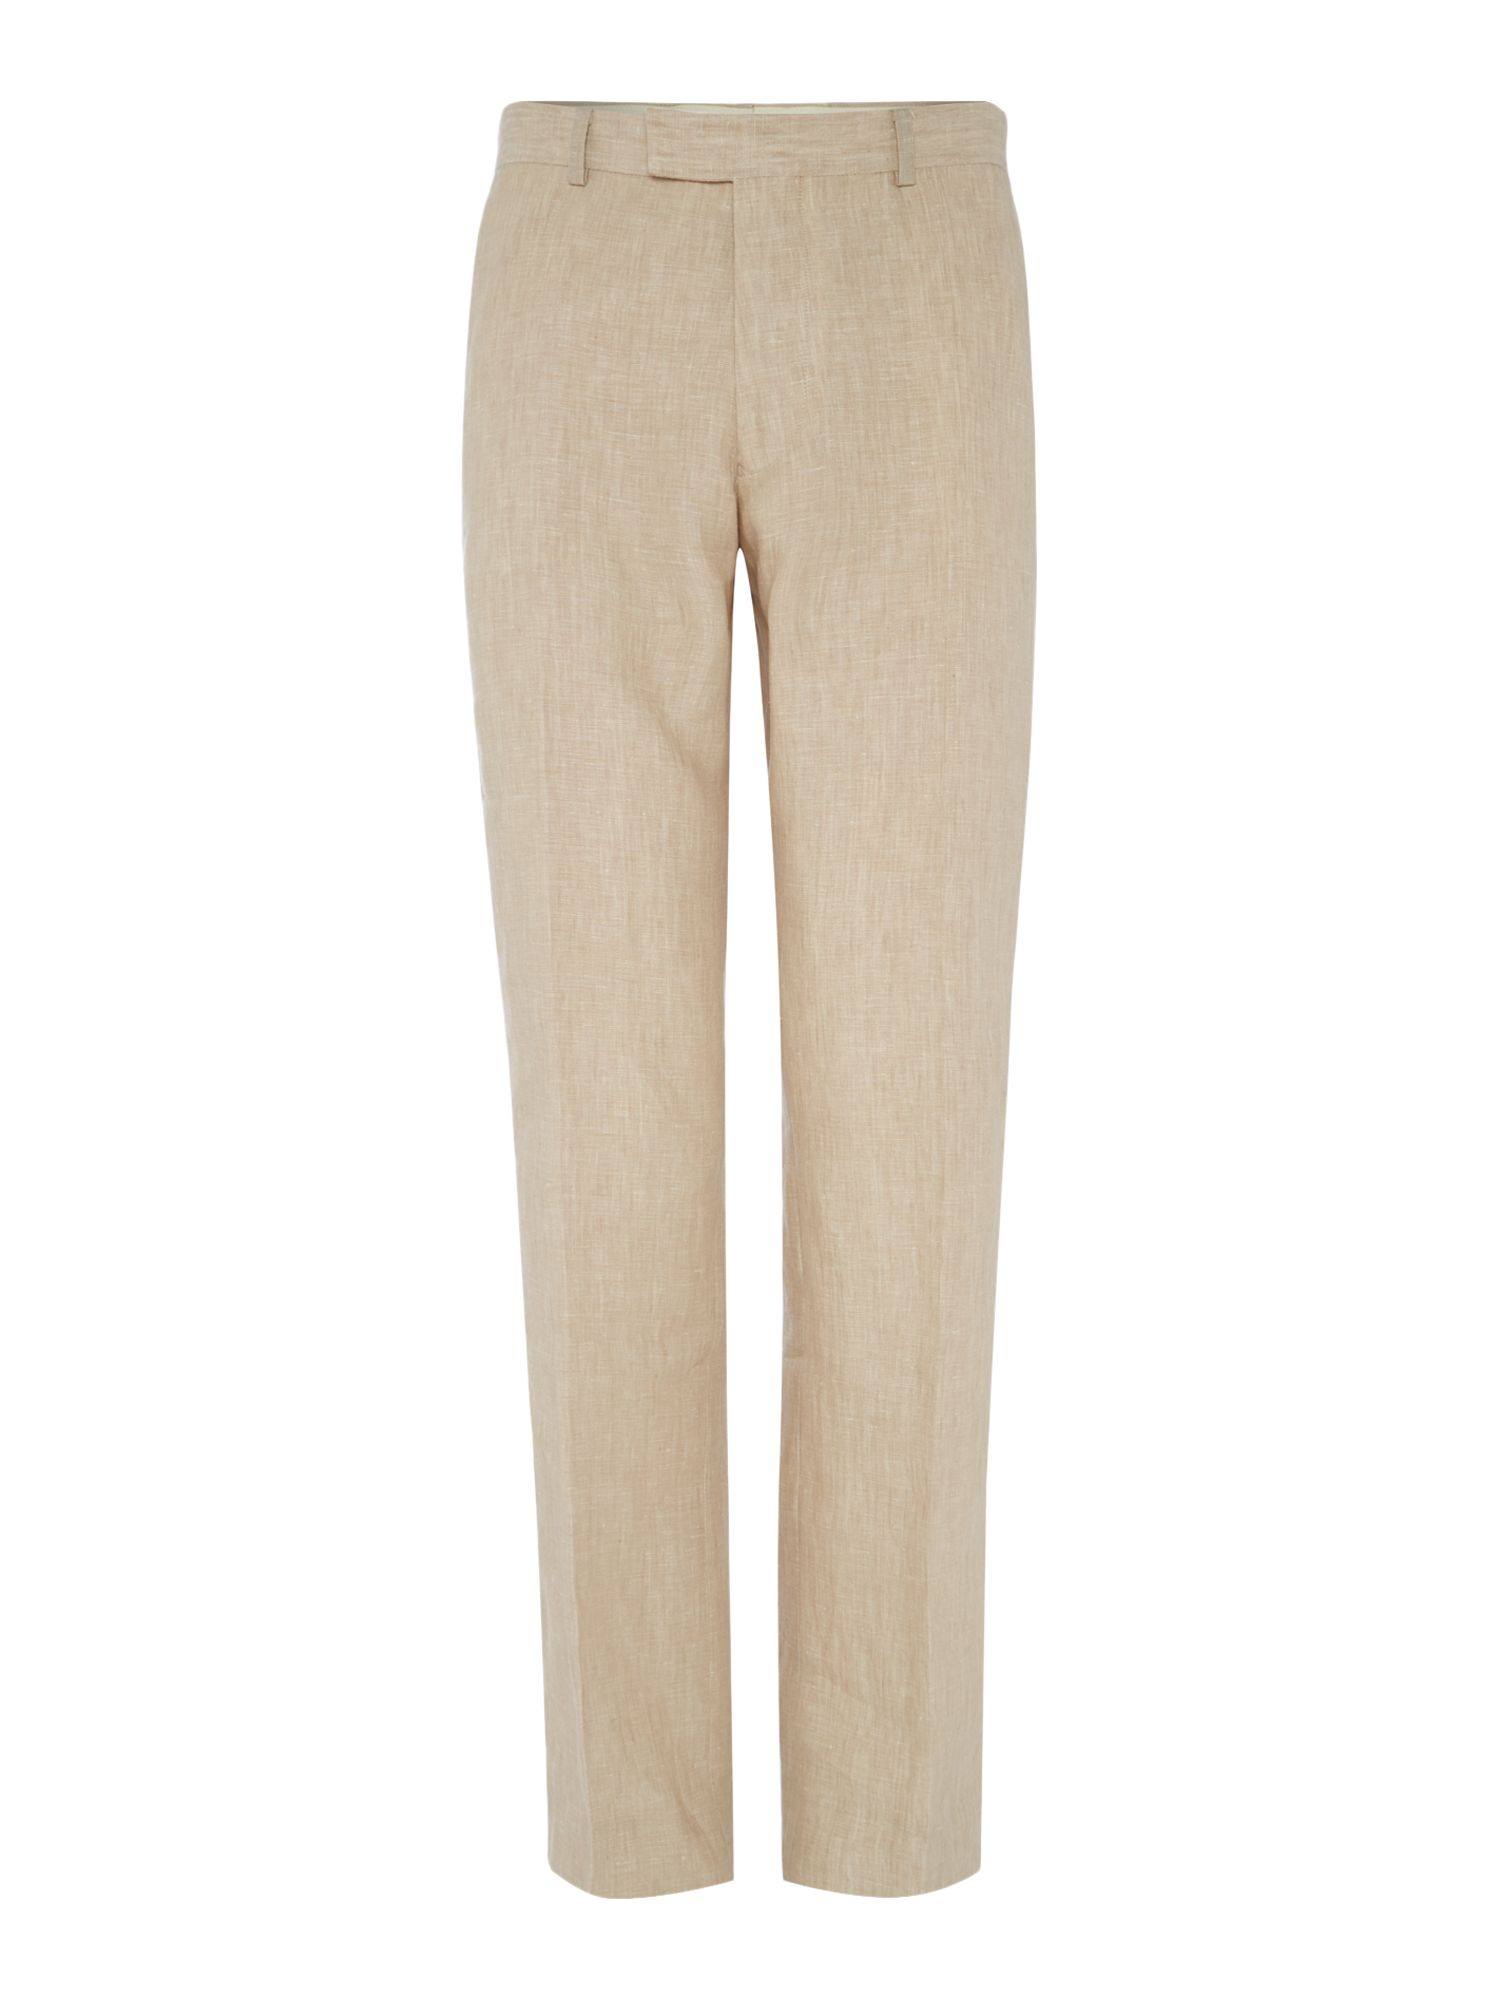 Howick Tailored Men's Howick Tailored Fabens Flat Front Linen Trousers, Natural